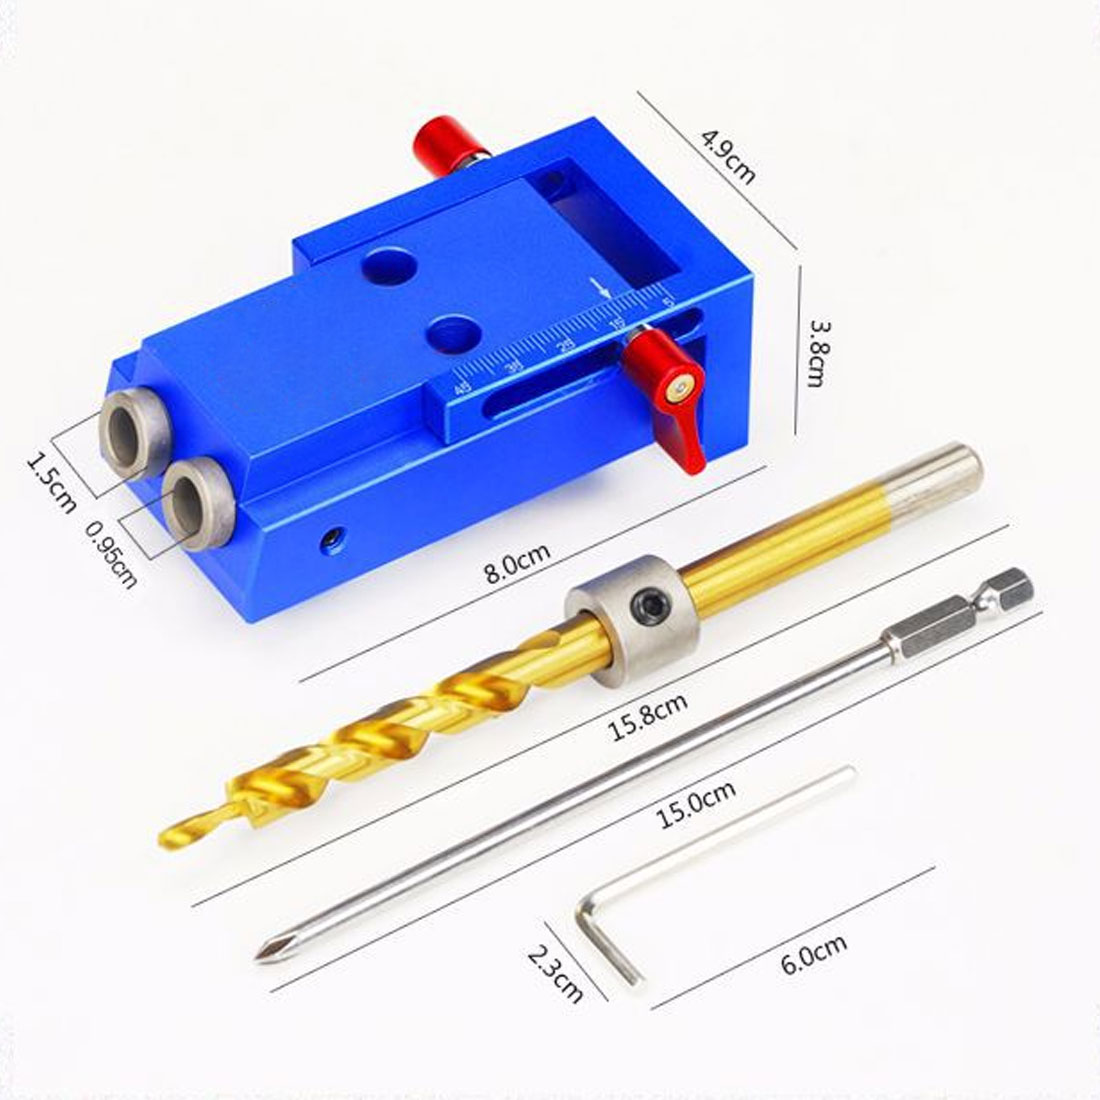 Woodworking Pocket Hole Jig Kit 6/8/10mm Angle Drill Guide Set Hole Puncher Locator Jig Drill Bit Set For DIY Carpentry Tools woodworking drill guide pocket hole jig 6 8 10mm mini drill bit sleeves for kreg pocket hole doweling joinery diy repair tools